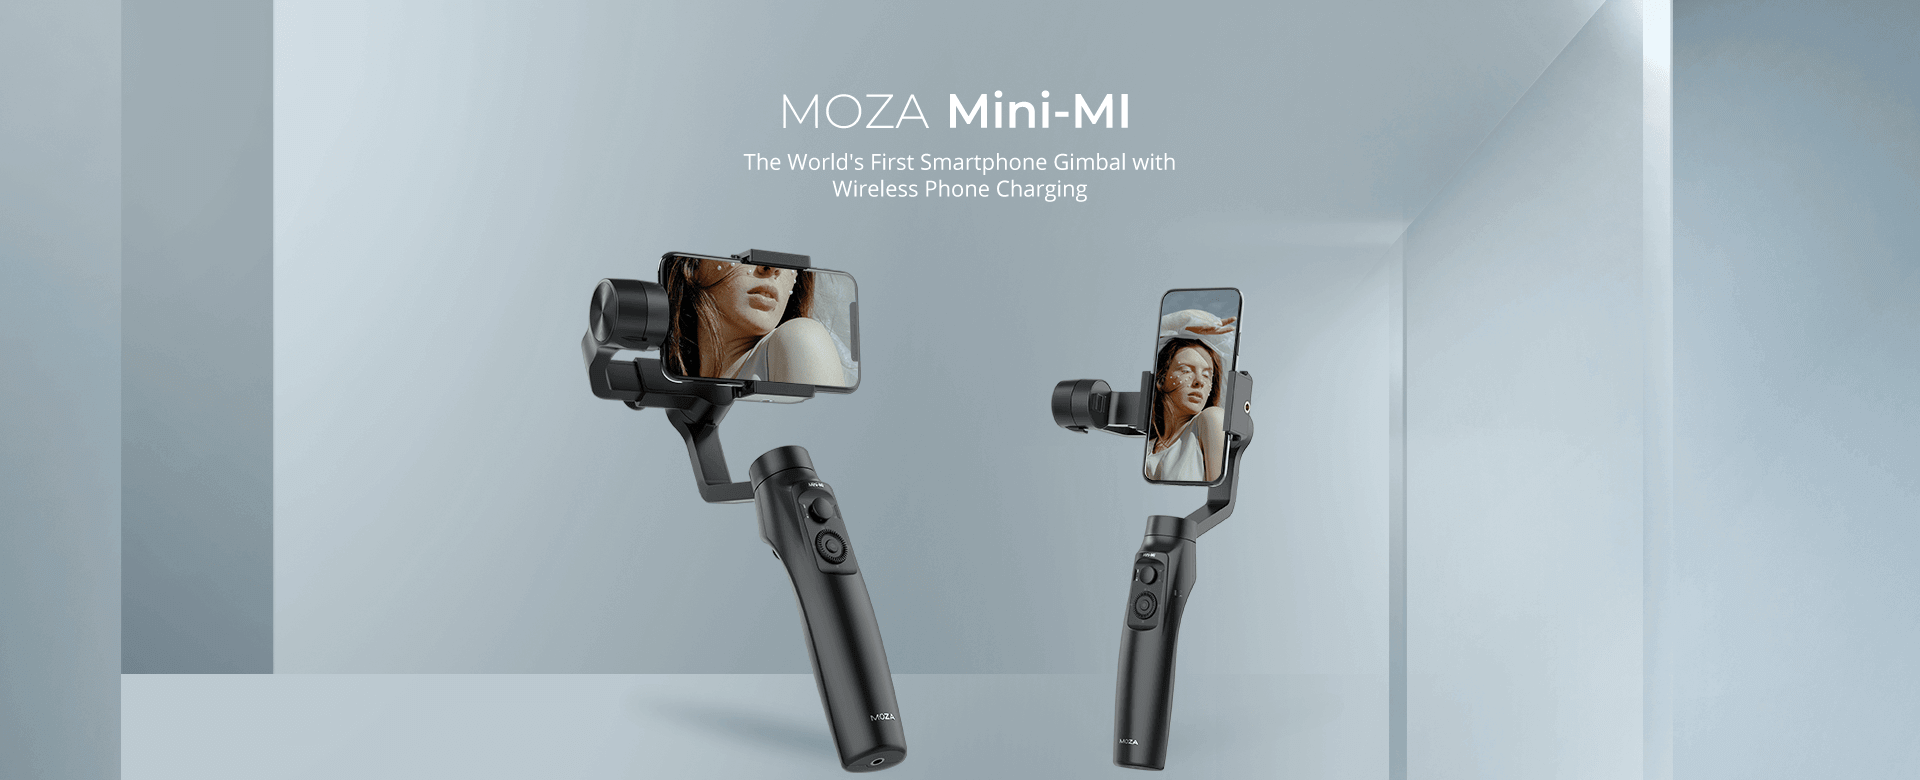 The World's First Smartphone Gimbal with Wireless Phone Charging